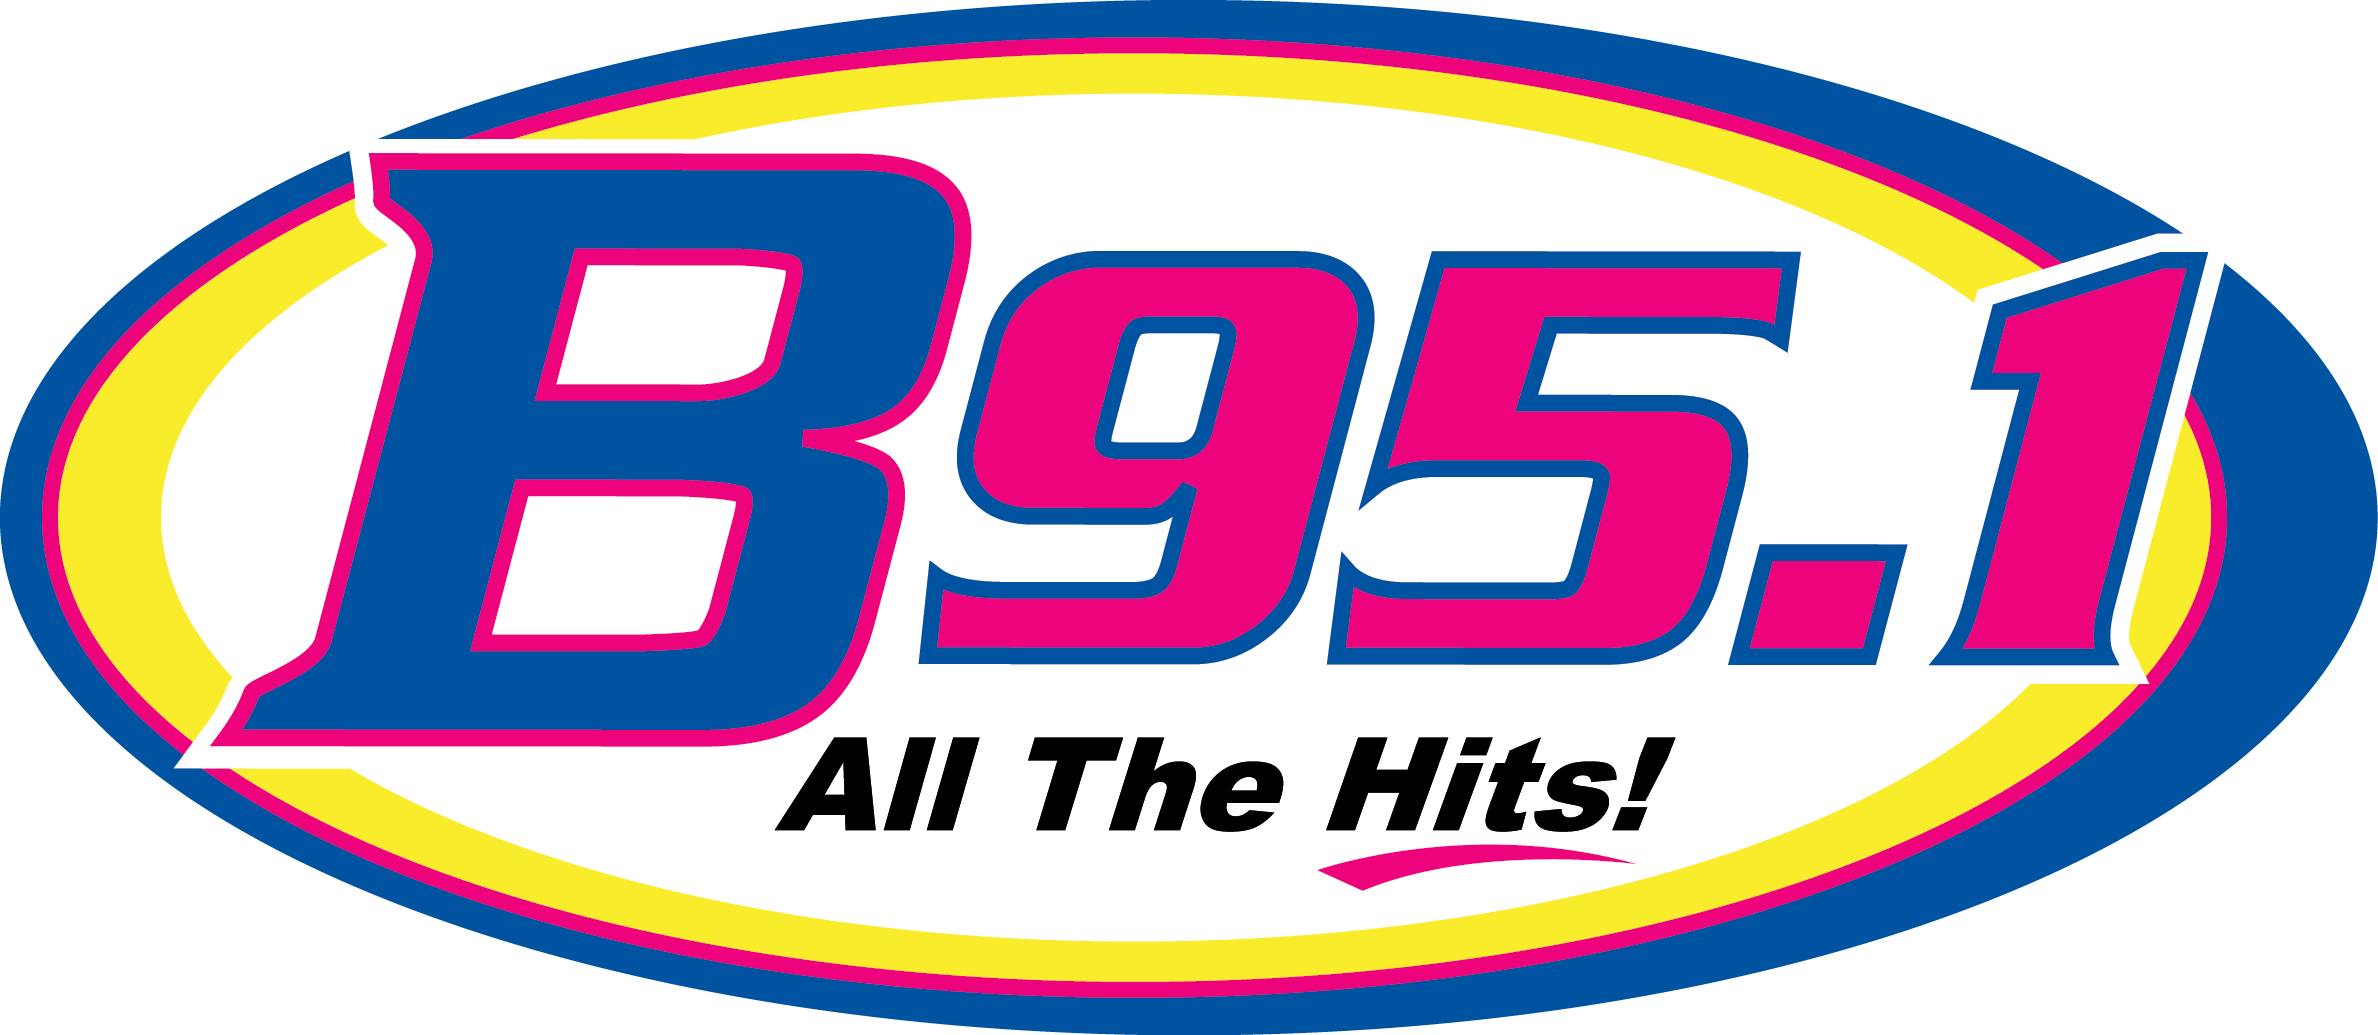 B95.1 All The Hits!